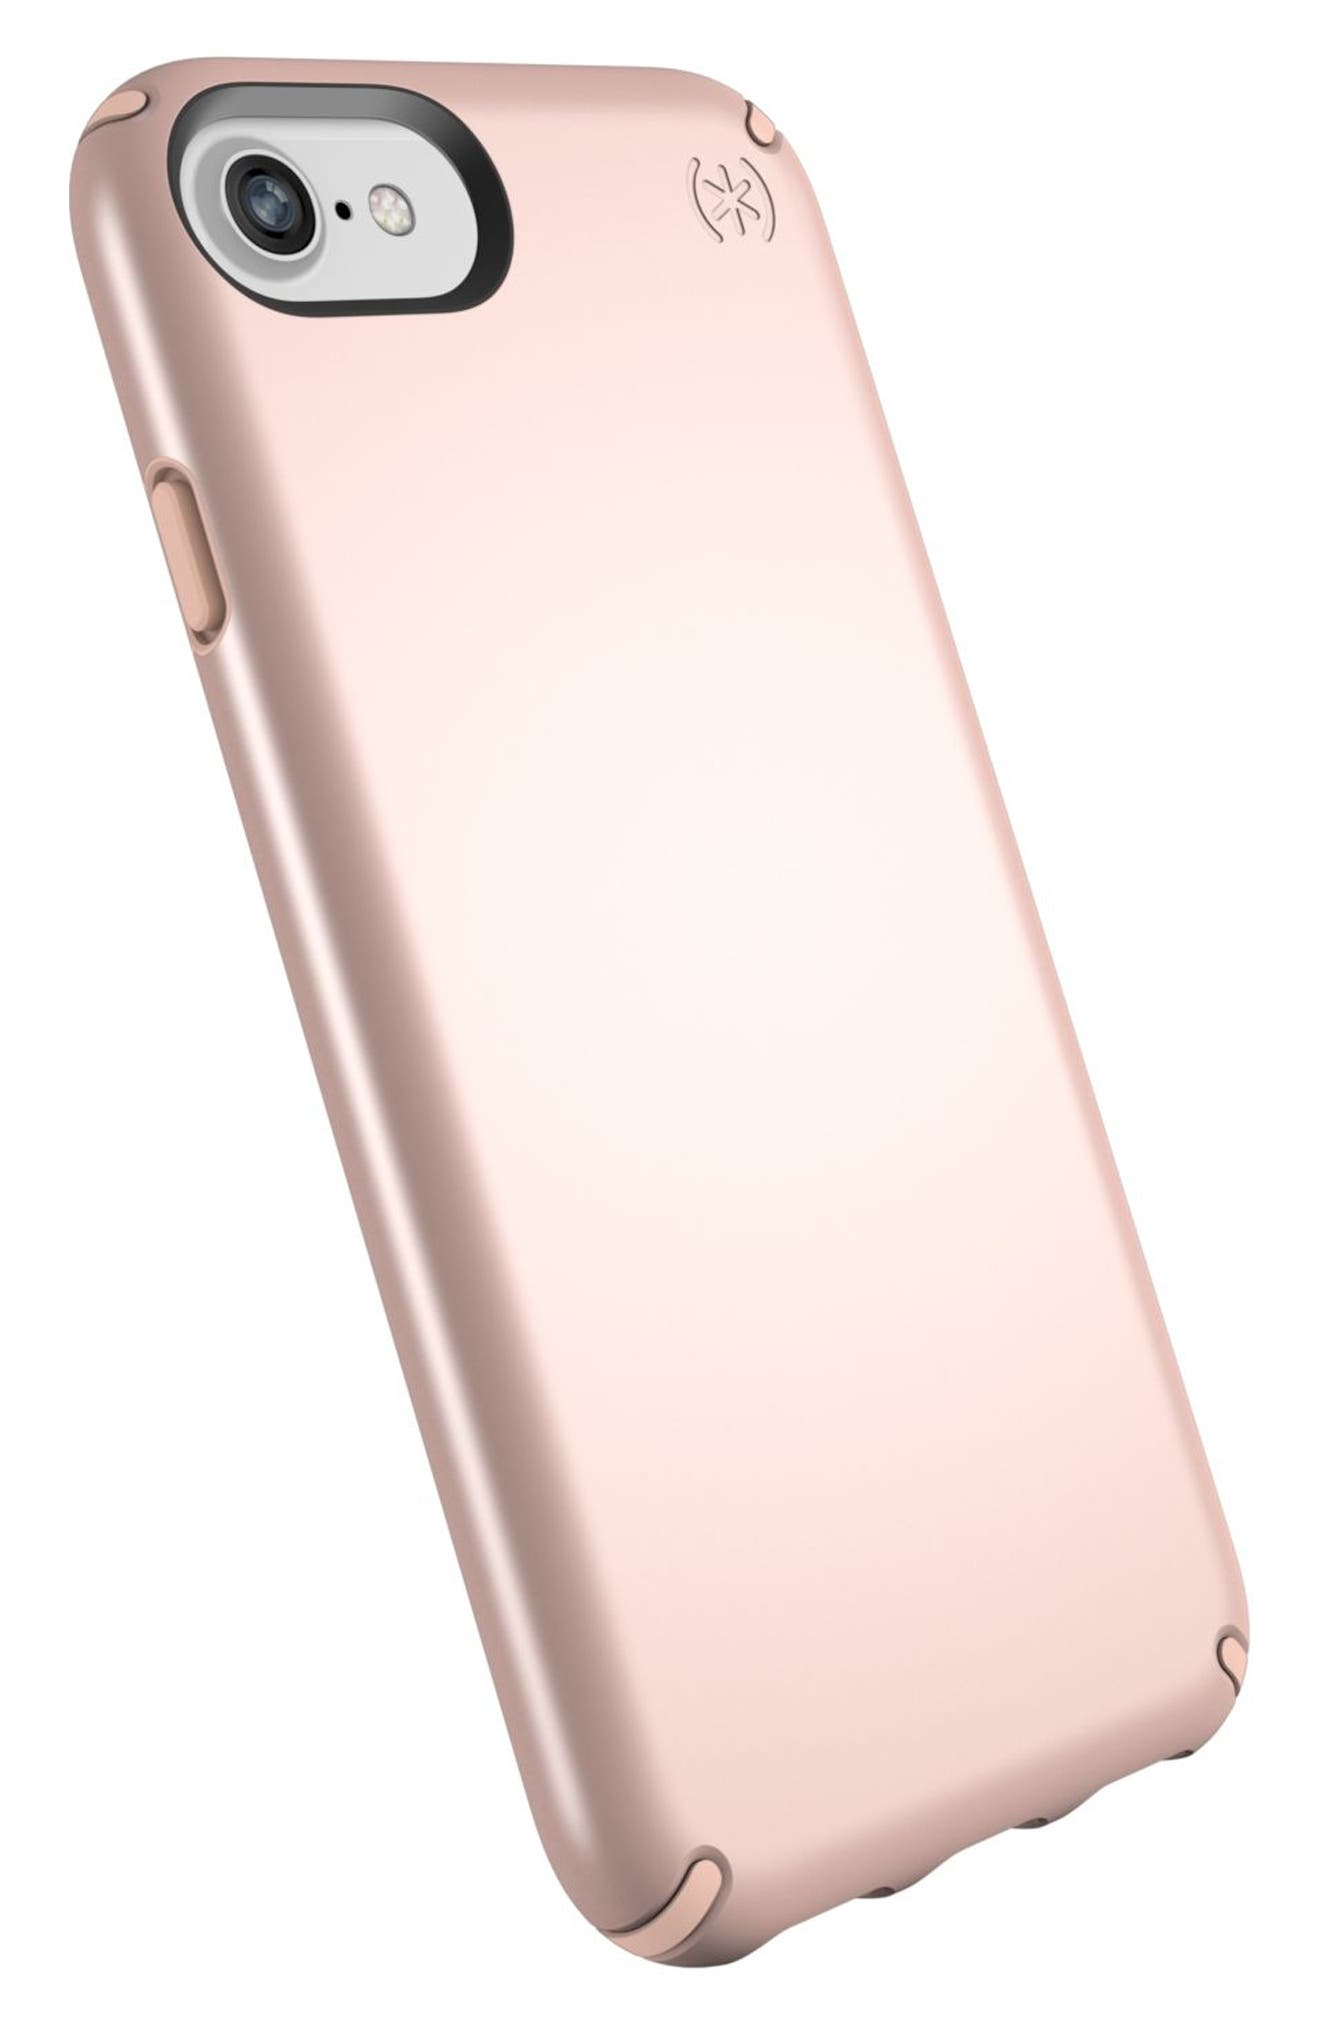 iPhone 6/6s/7/8 Case,                             Alternate thumbnail 4, color,                             Rose Gold Metallic/ Peach